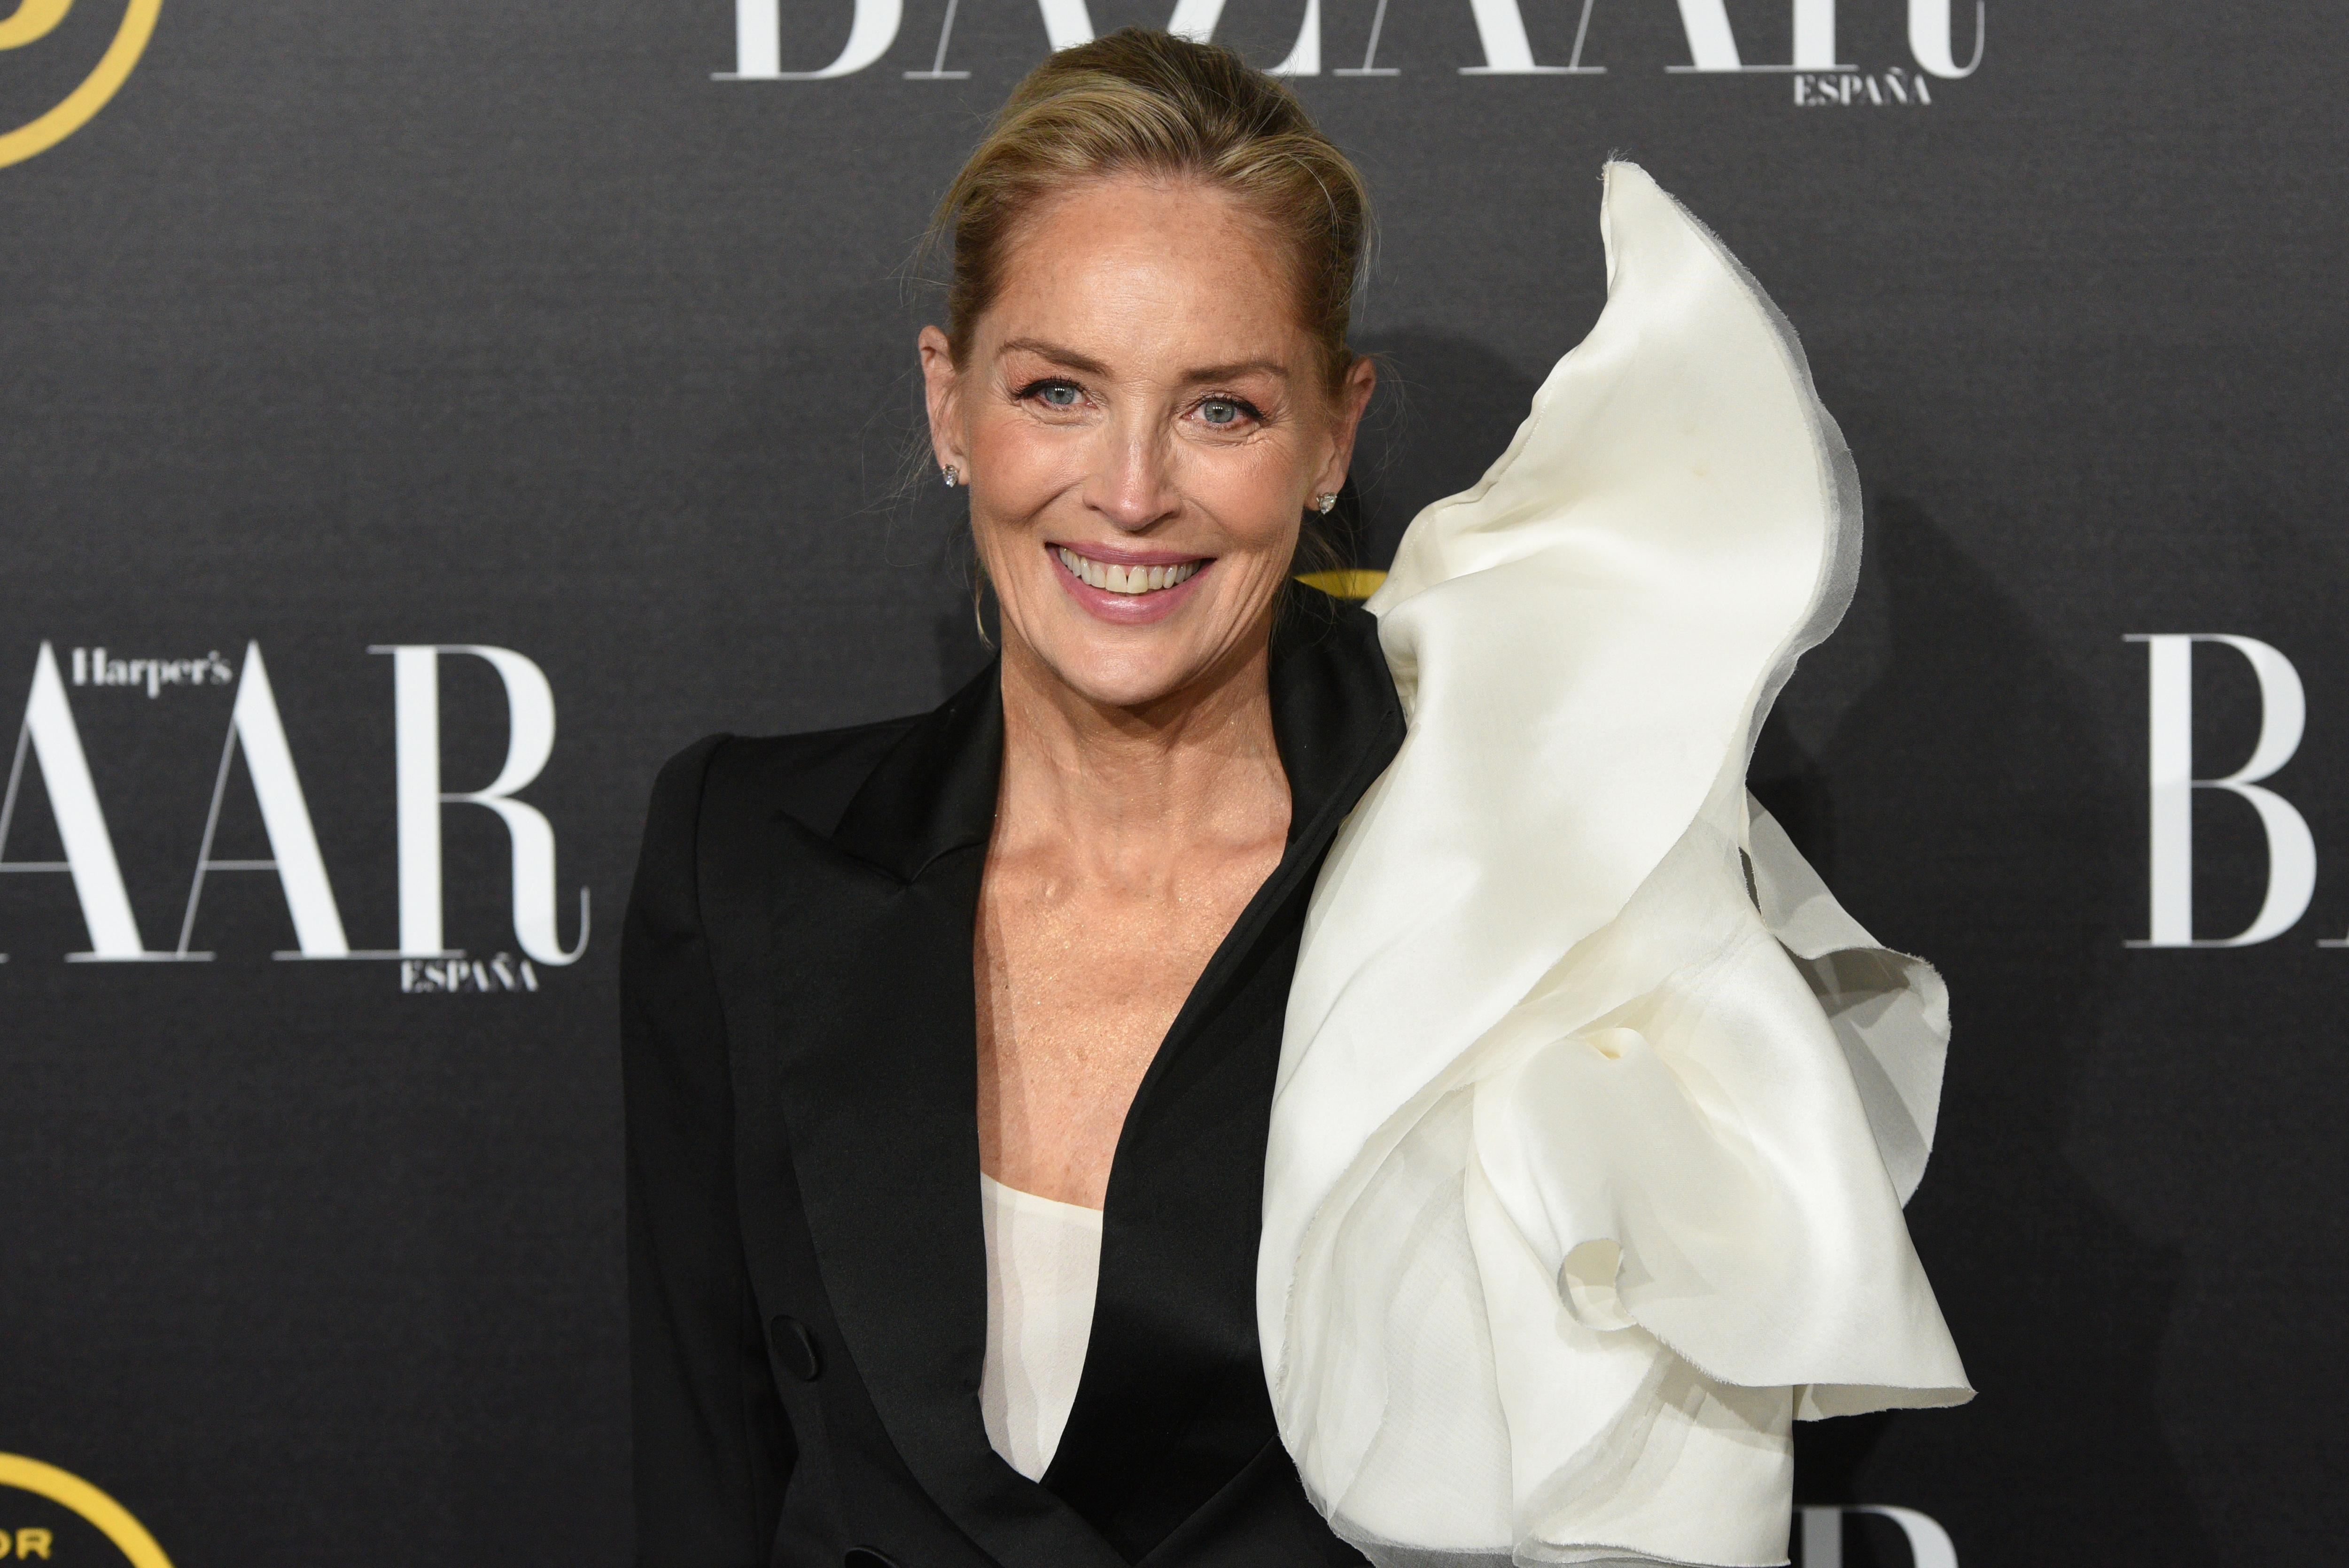 Sharon Stone supports Pete Buttigieg for president: 'I believe he is the candidate that will take us to a safer, more thoughtful future'